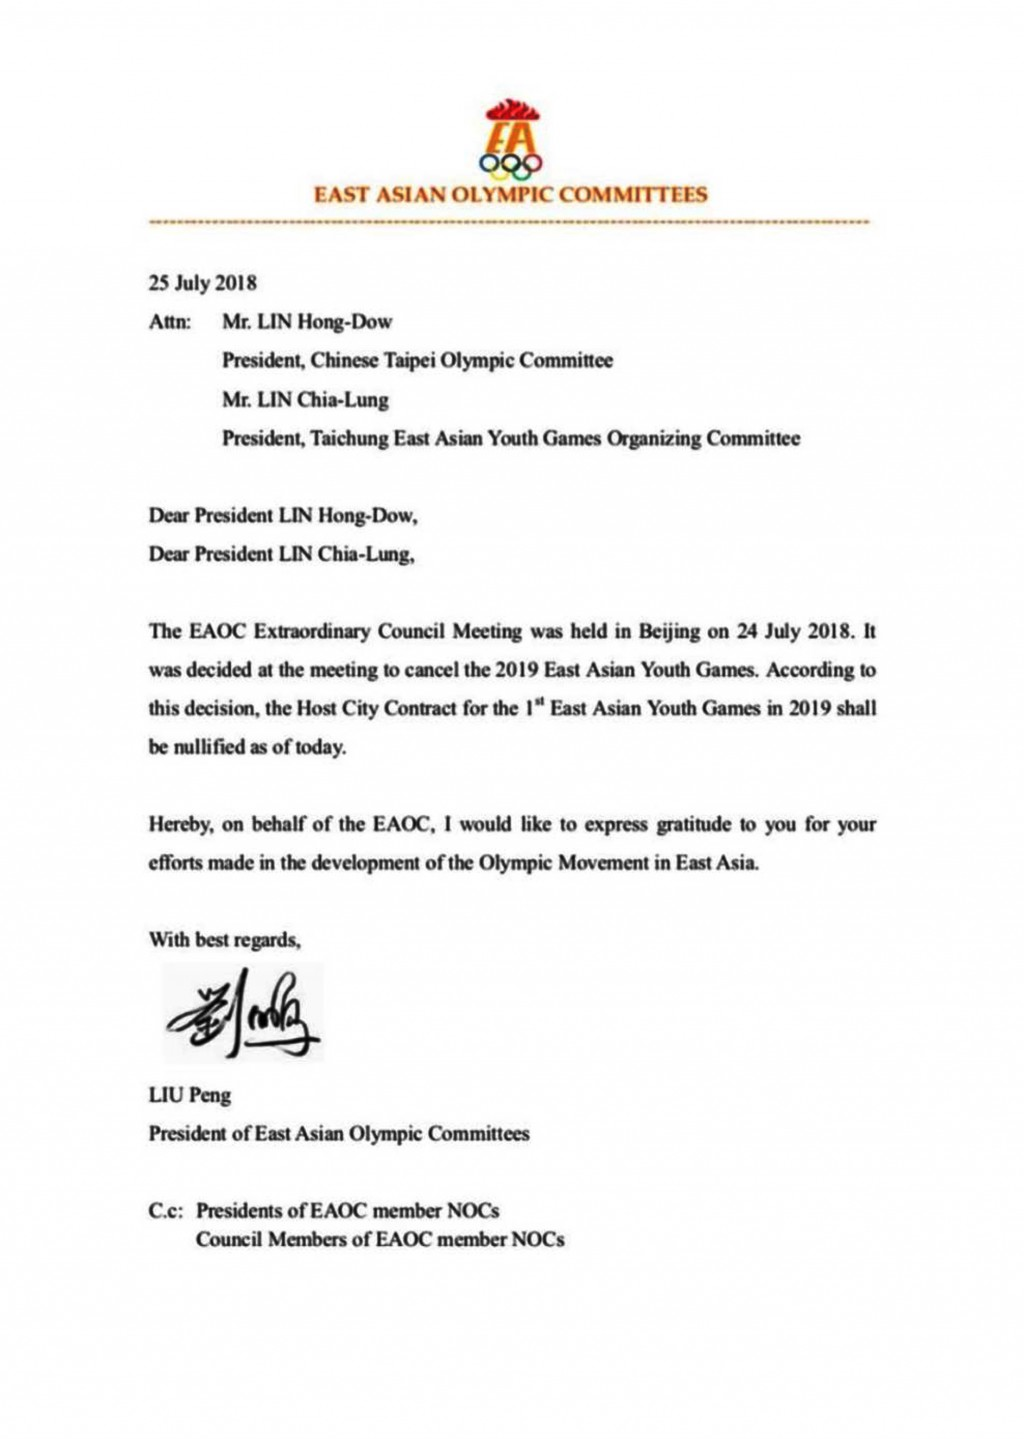 The letter of cancellation the EAOC sent to the Taichung City Government.